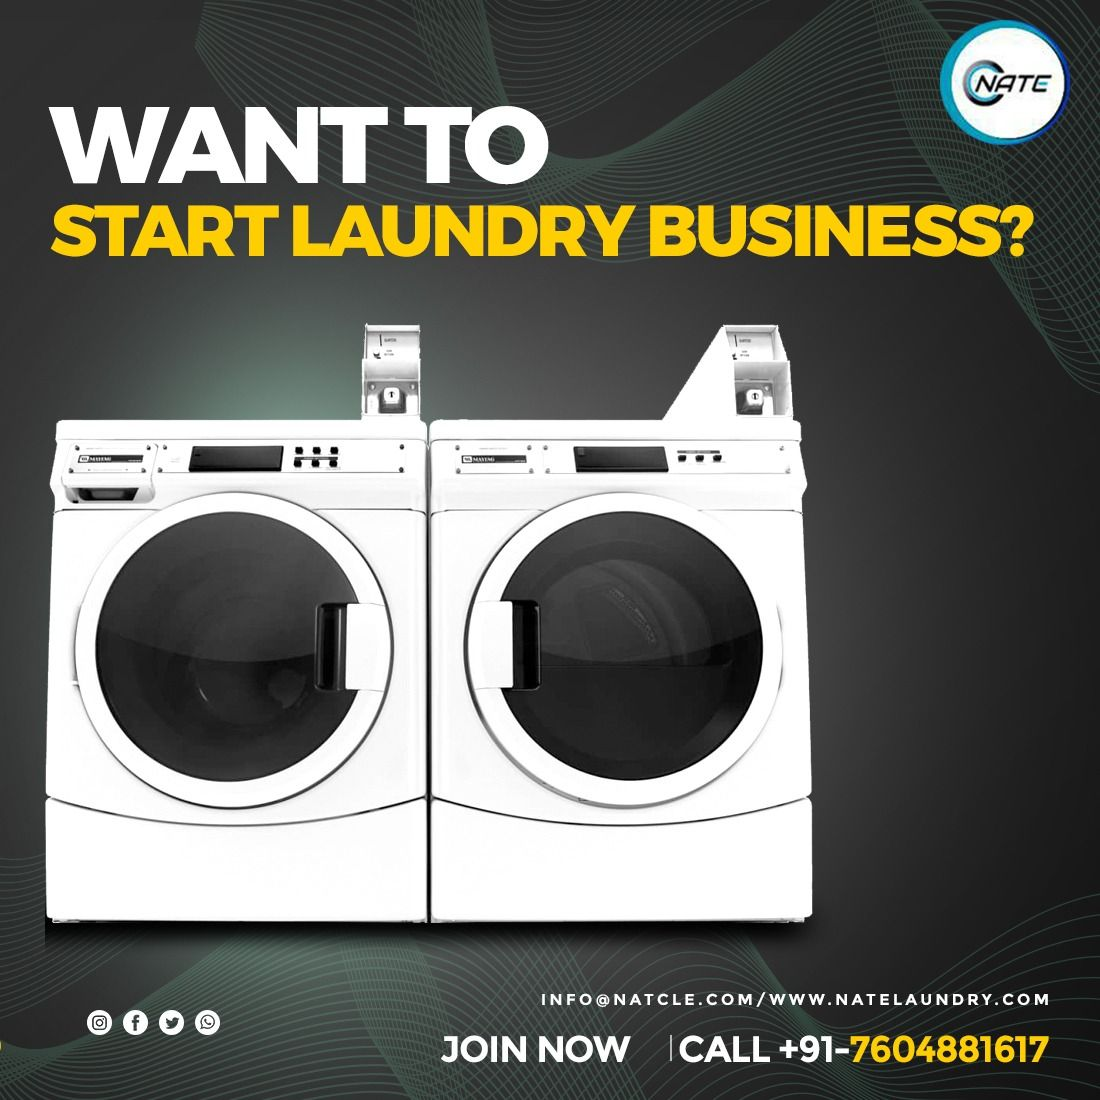 Want To Start Laundry Business Reach Nate Commercial Laundry